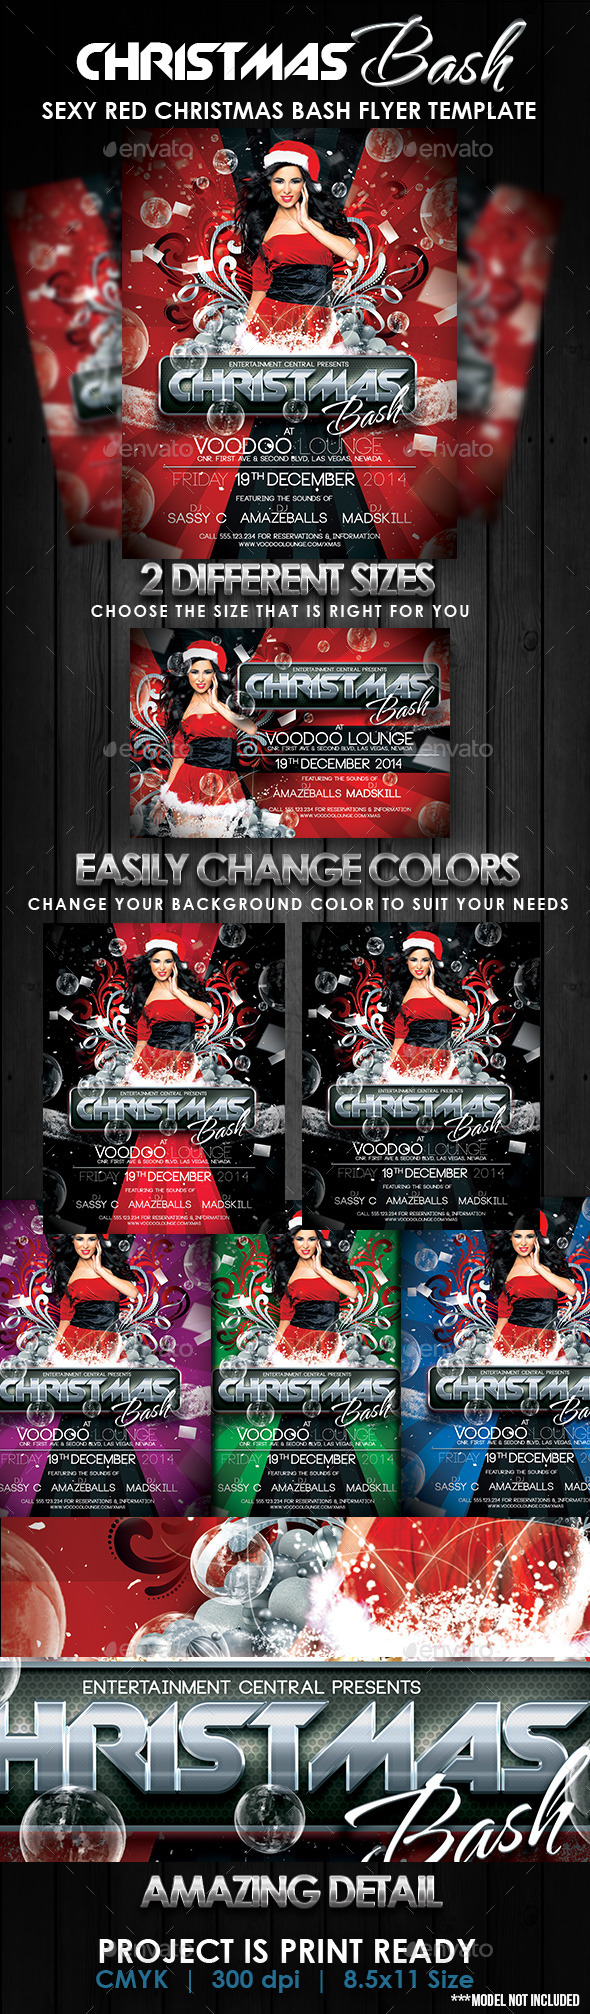 Sexy Red Christmas Bash Flyer Template - Clubs & Parties Events